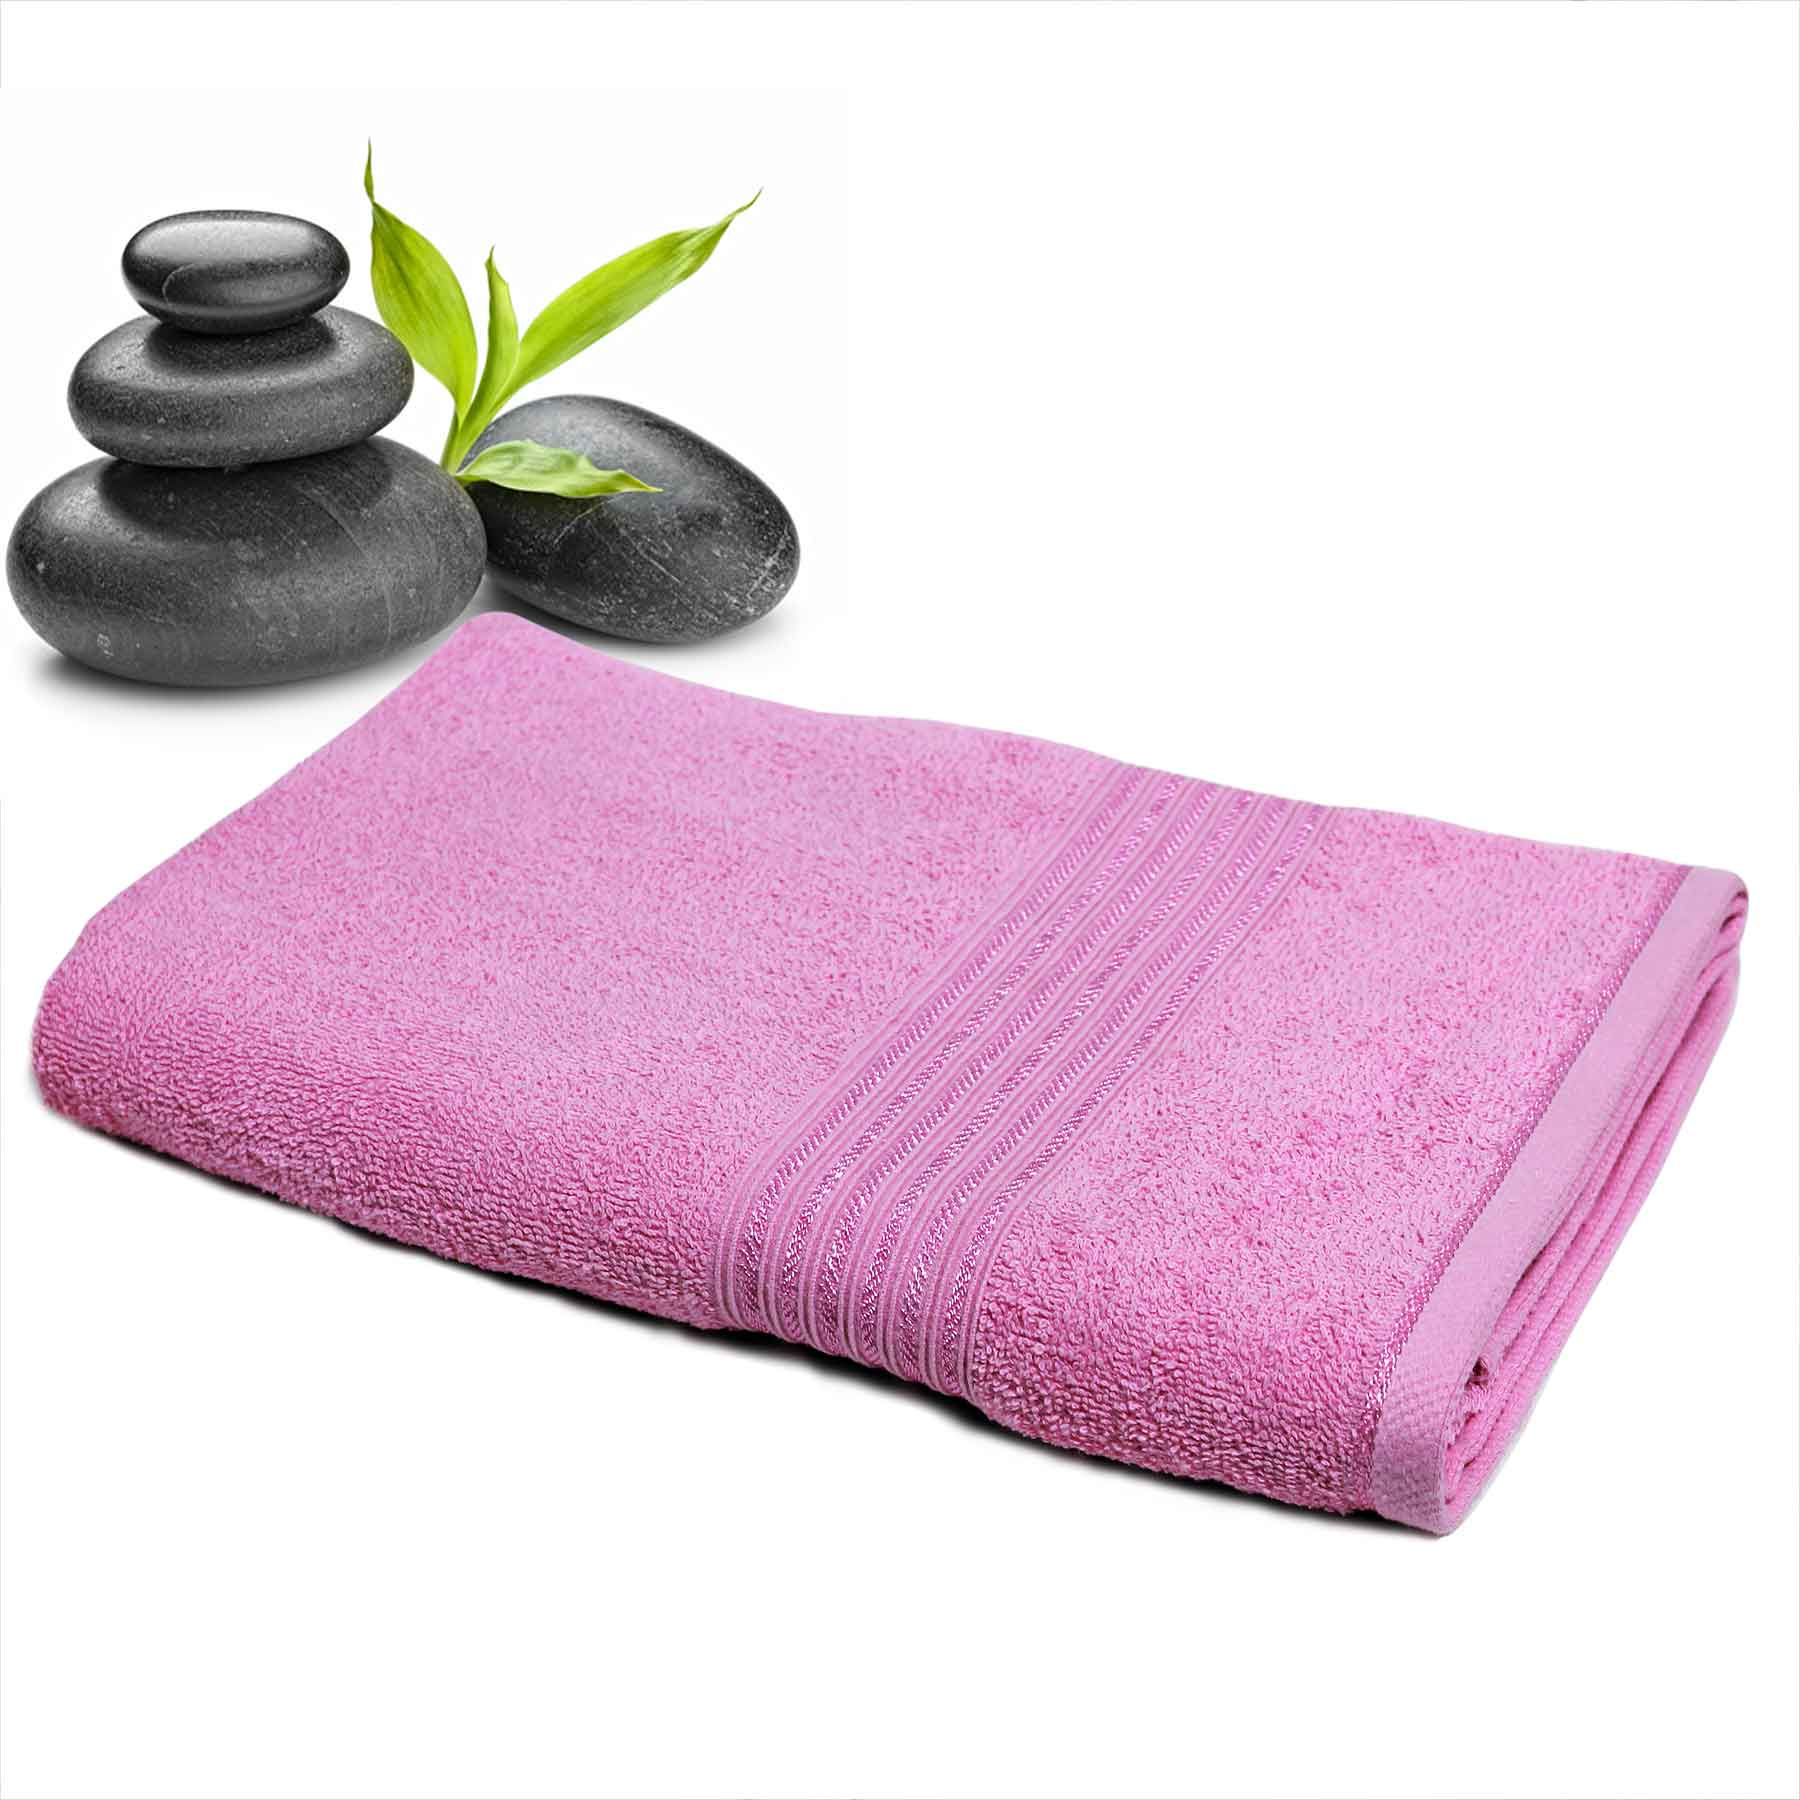 DIVINE CASA Single Cotton Bath Towel Pink (Ladies)